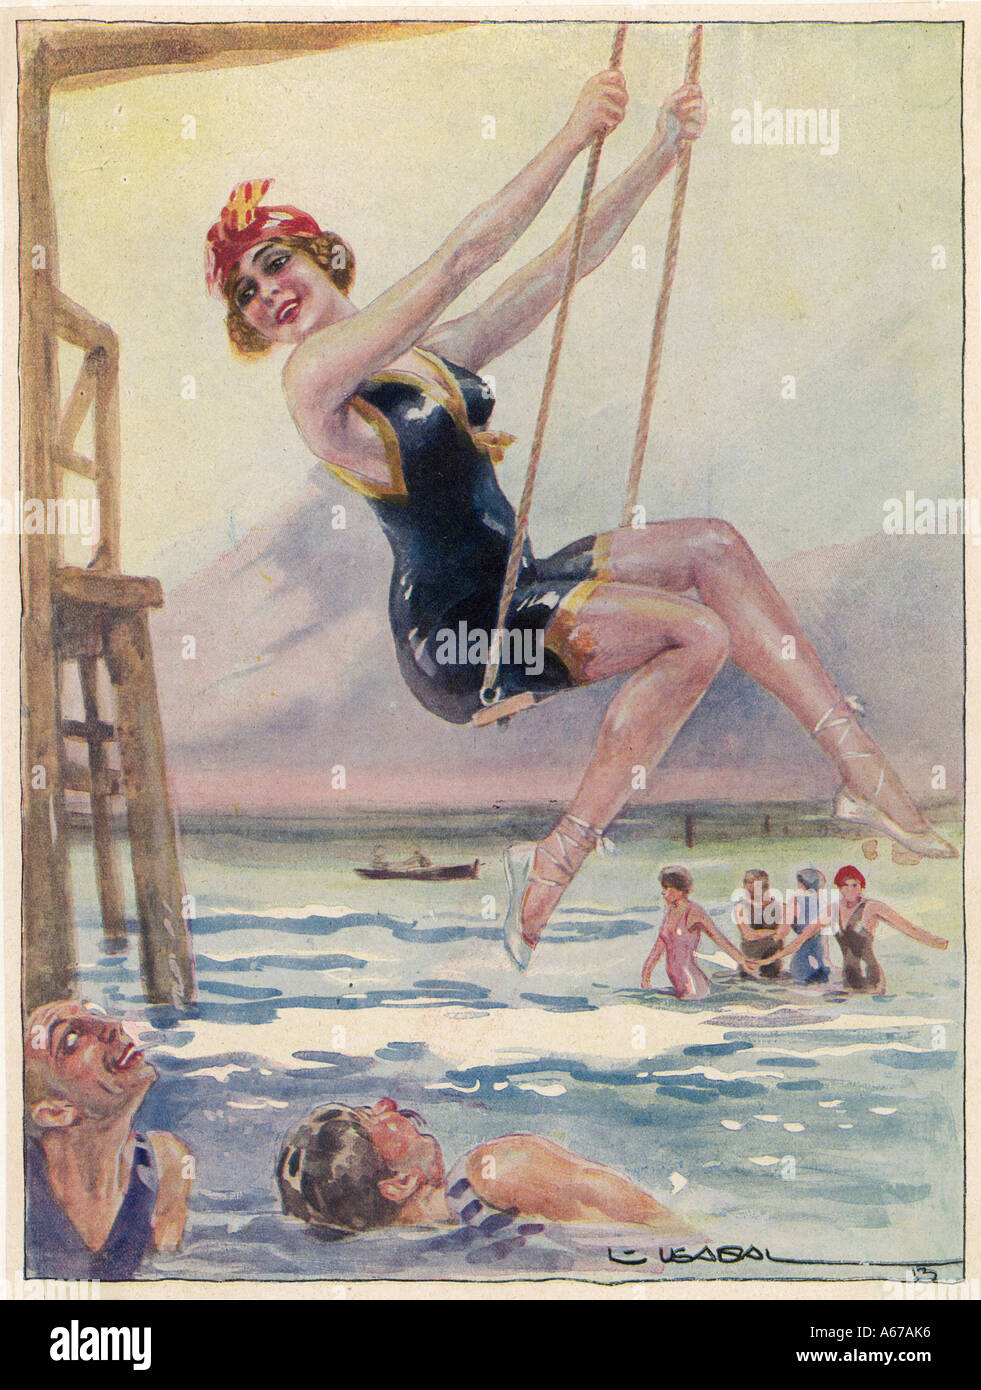 Swinging By The Sea - Stock Image